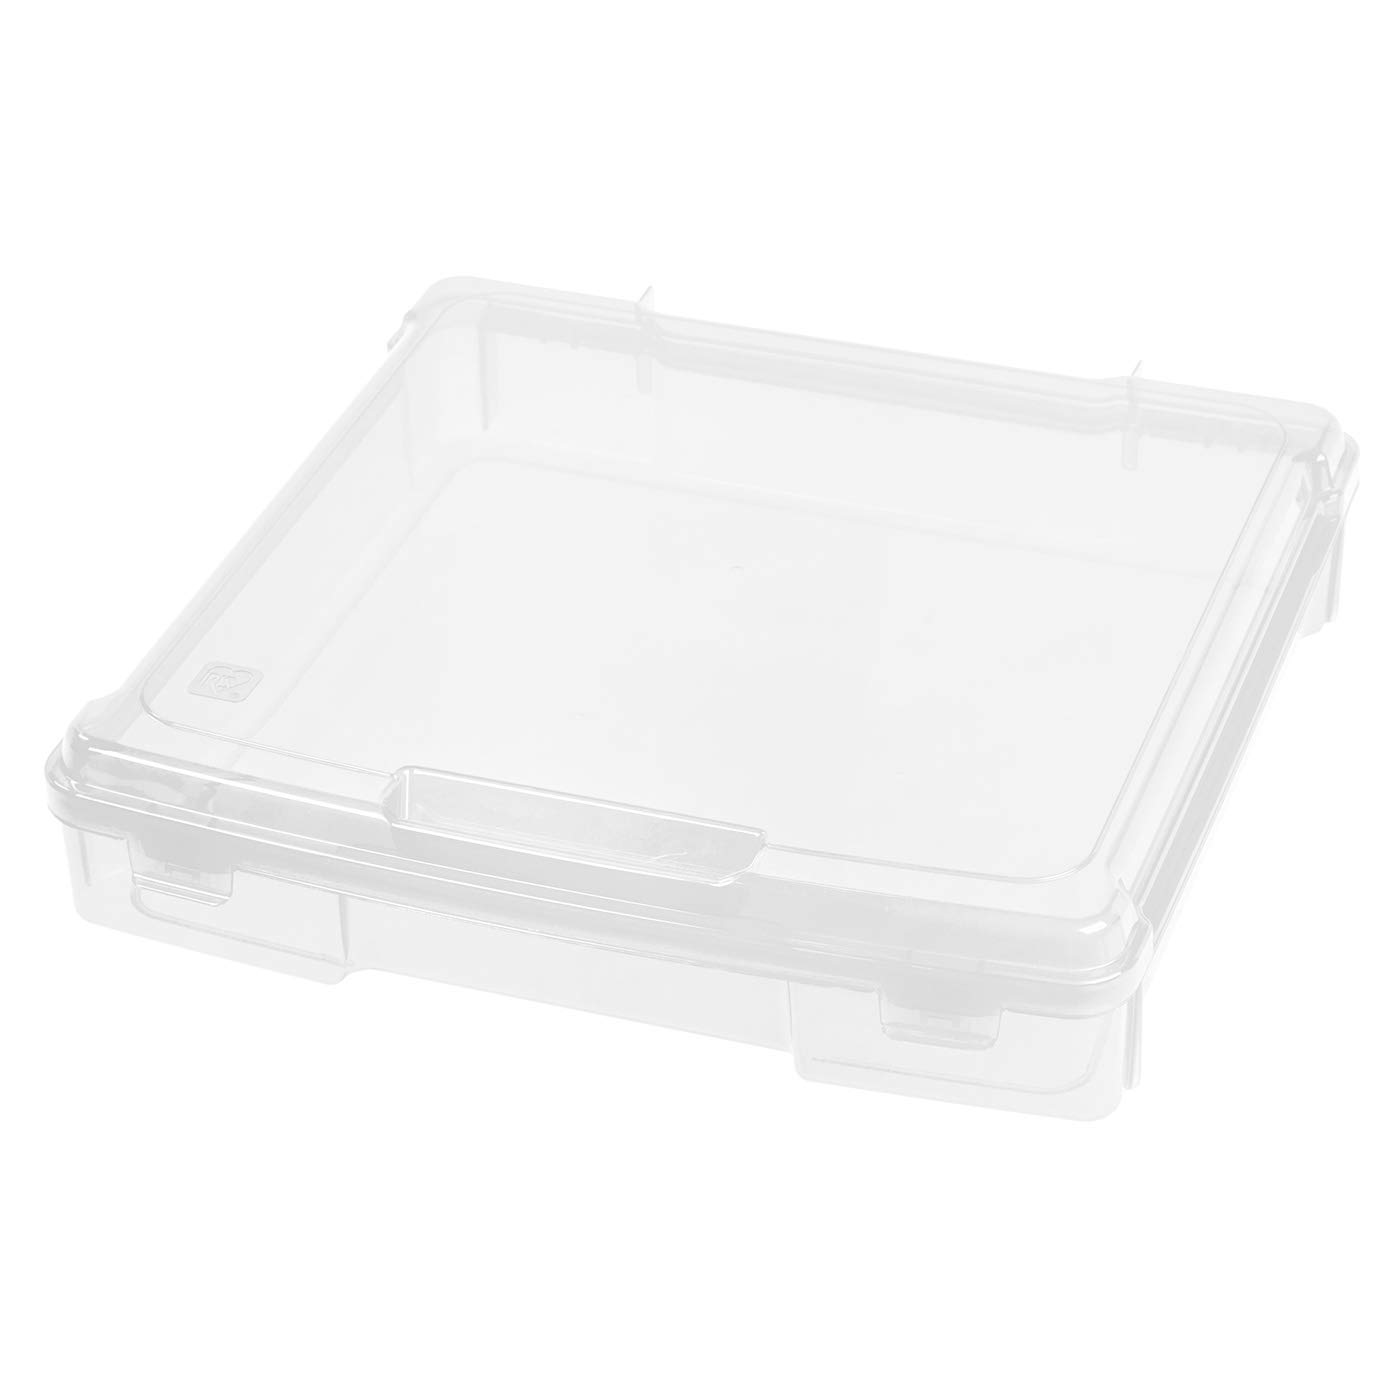 IRIS Portable Project Case for 6 x 6 Paper